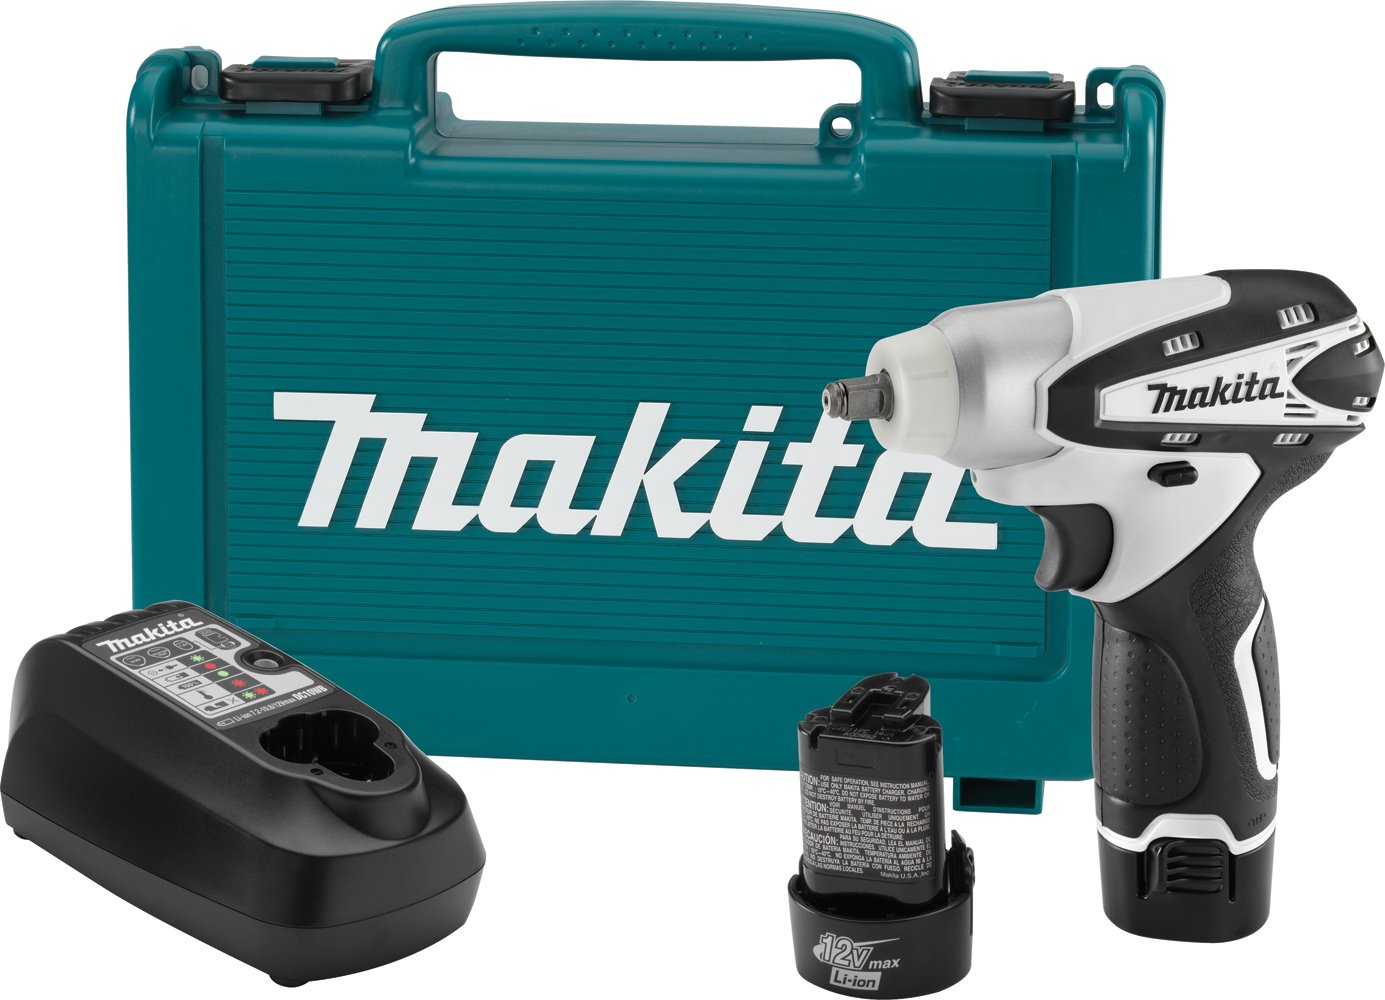 Makita WT01W 12V max Lithium-Ion Cordless 3 8 Inch Impact Wrench Kit Discontinued by Manufacturer